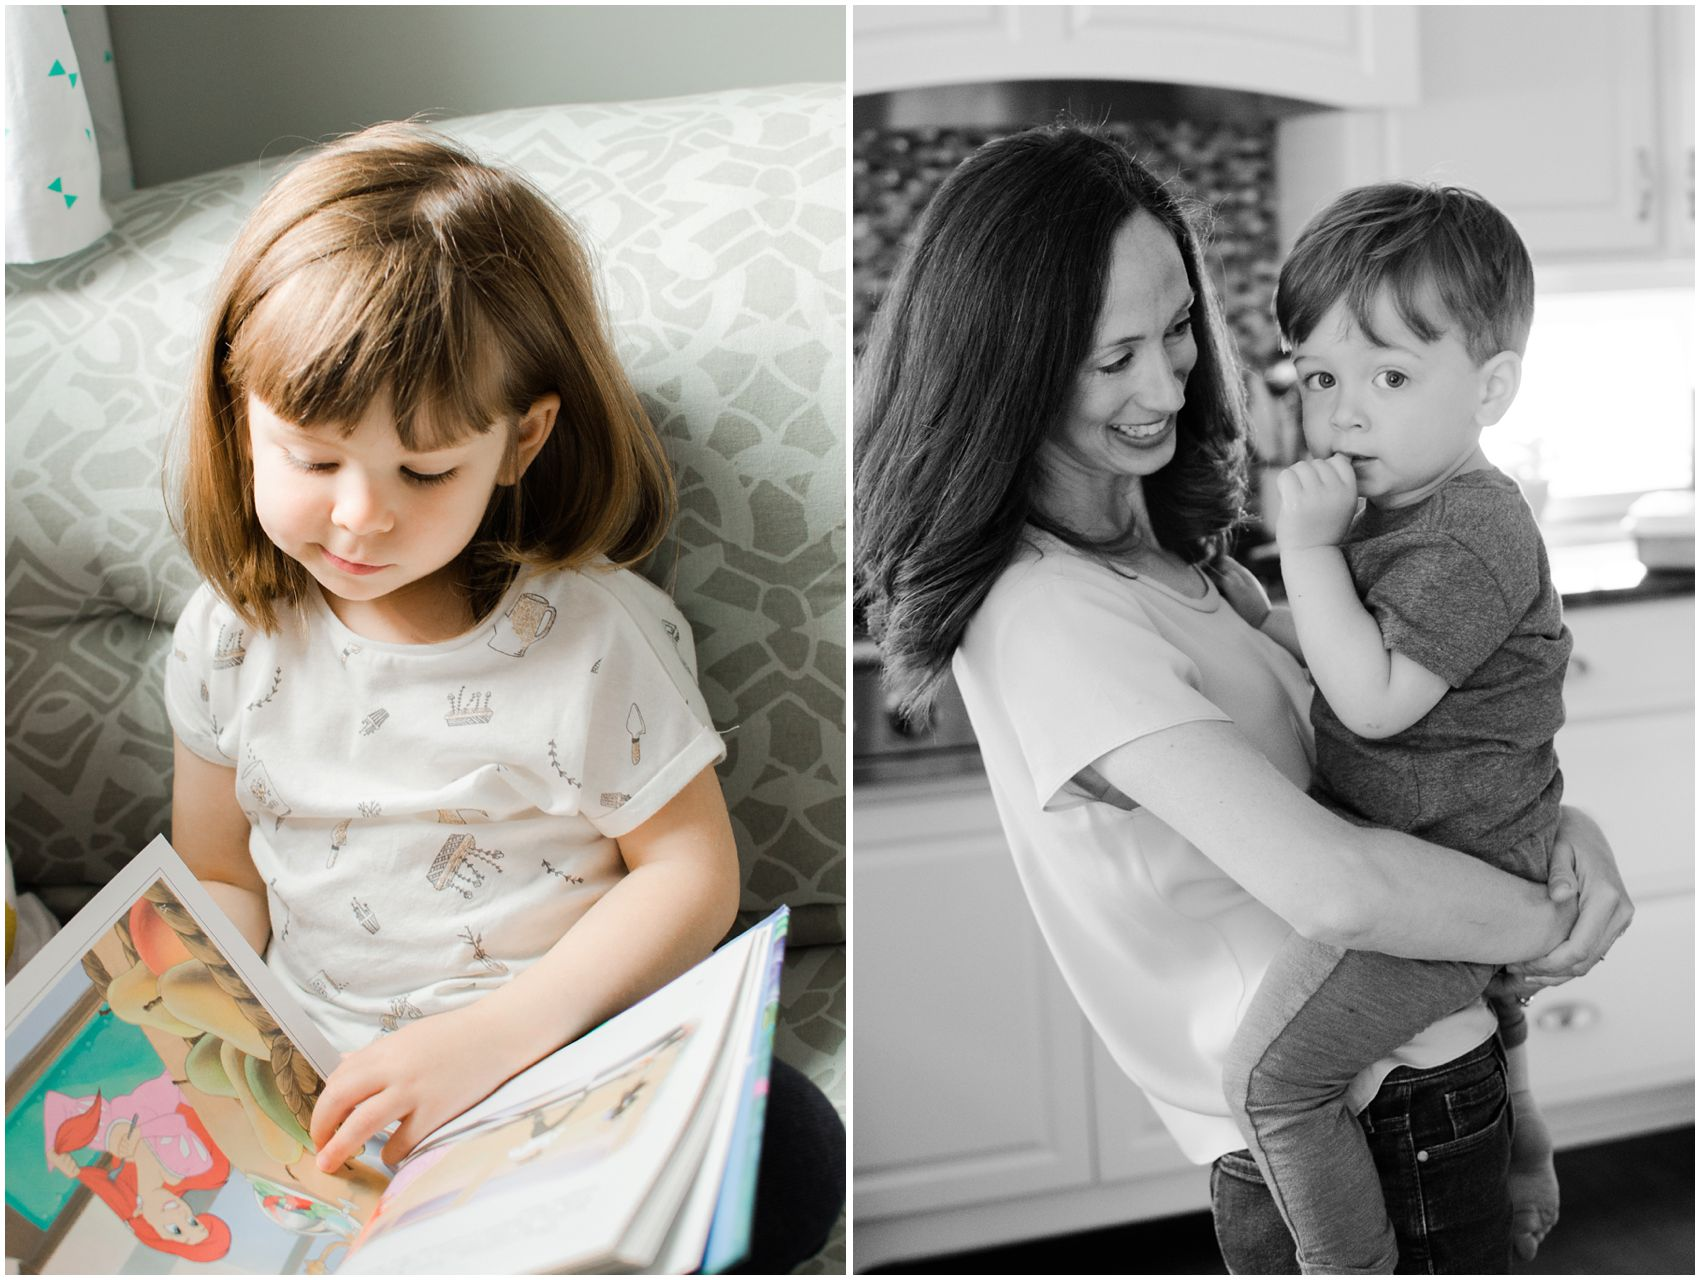 little girl is reading the book while a little boy is snuggled in  his moms arms